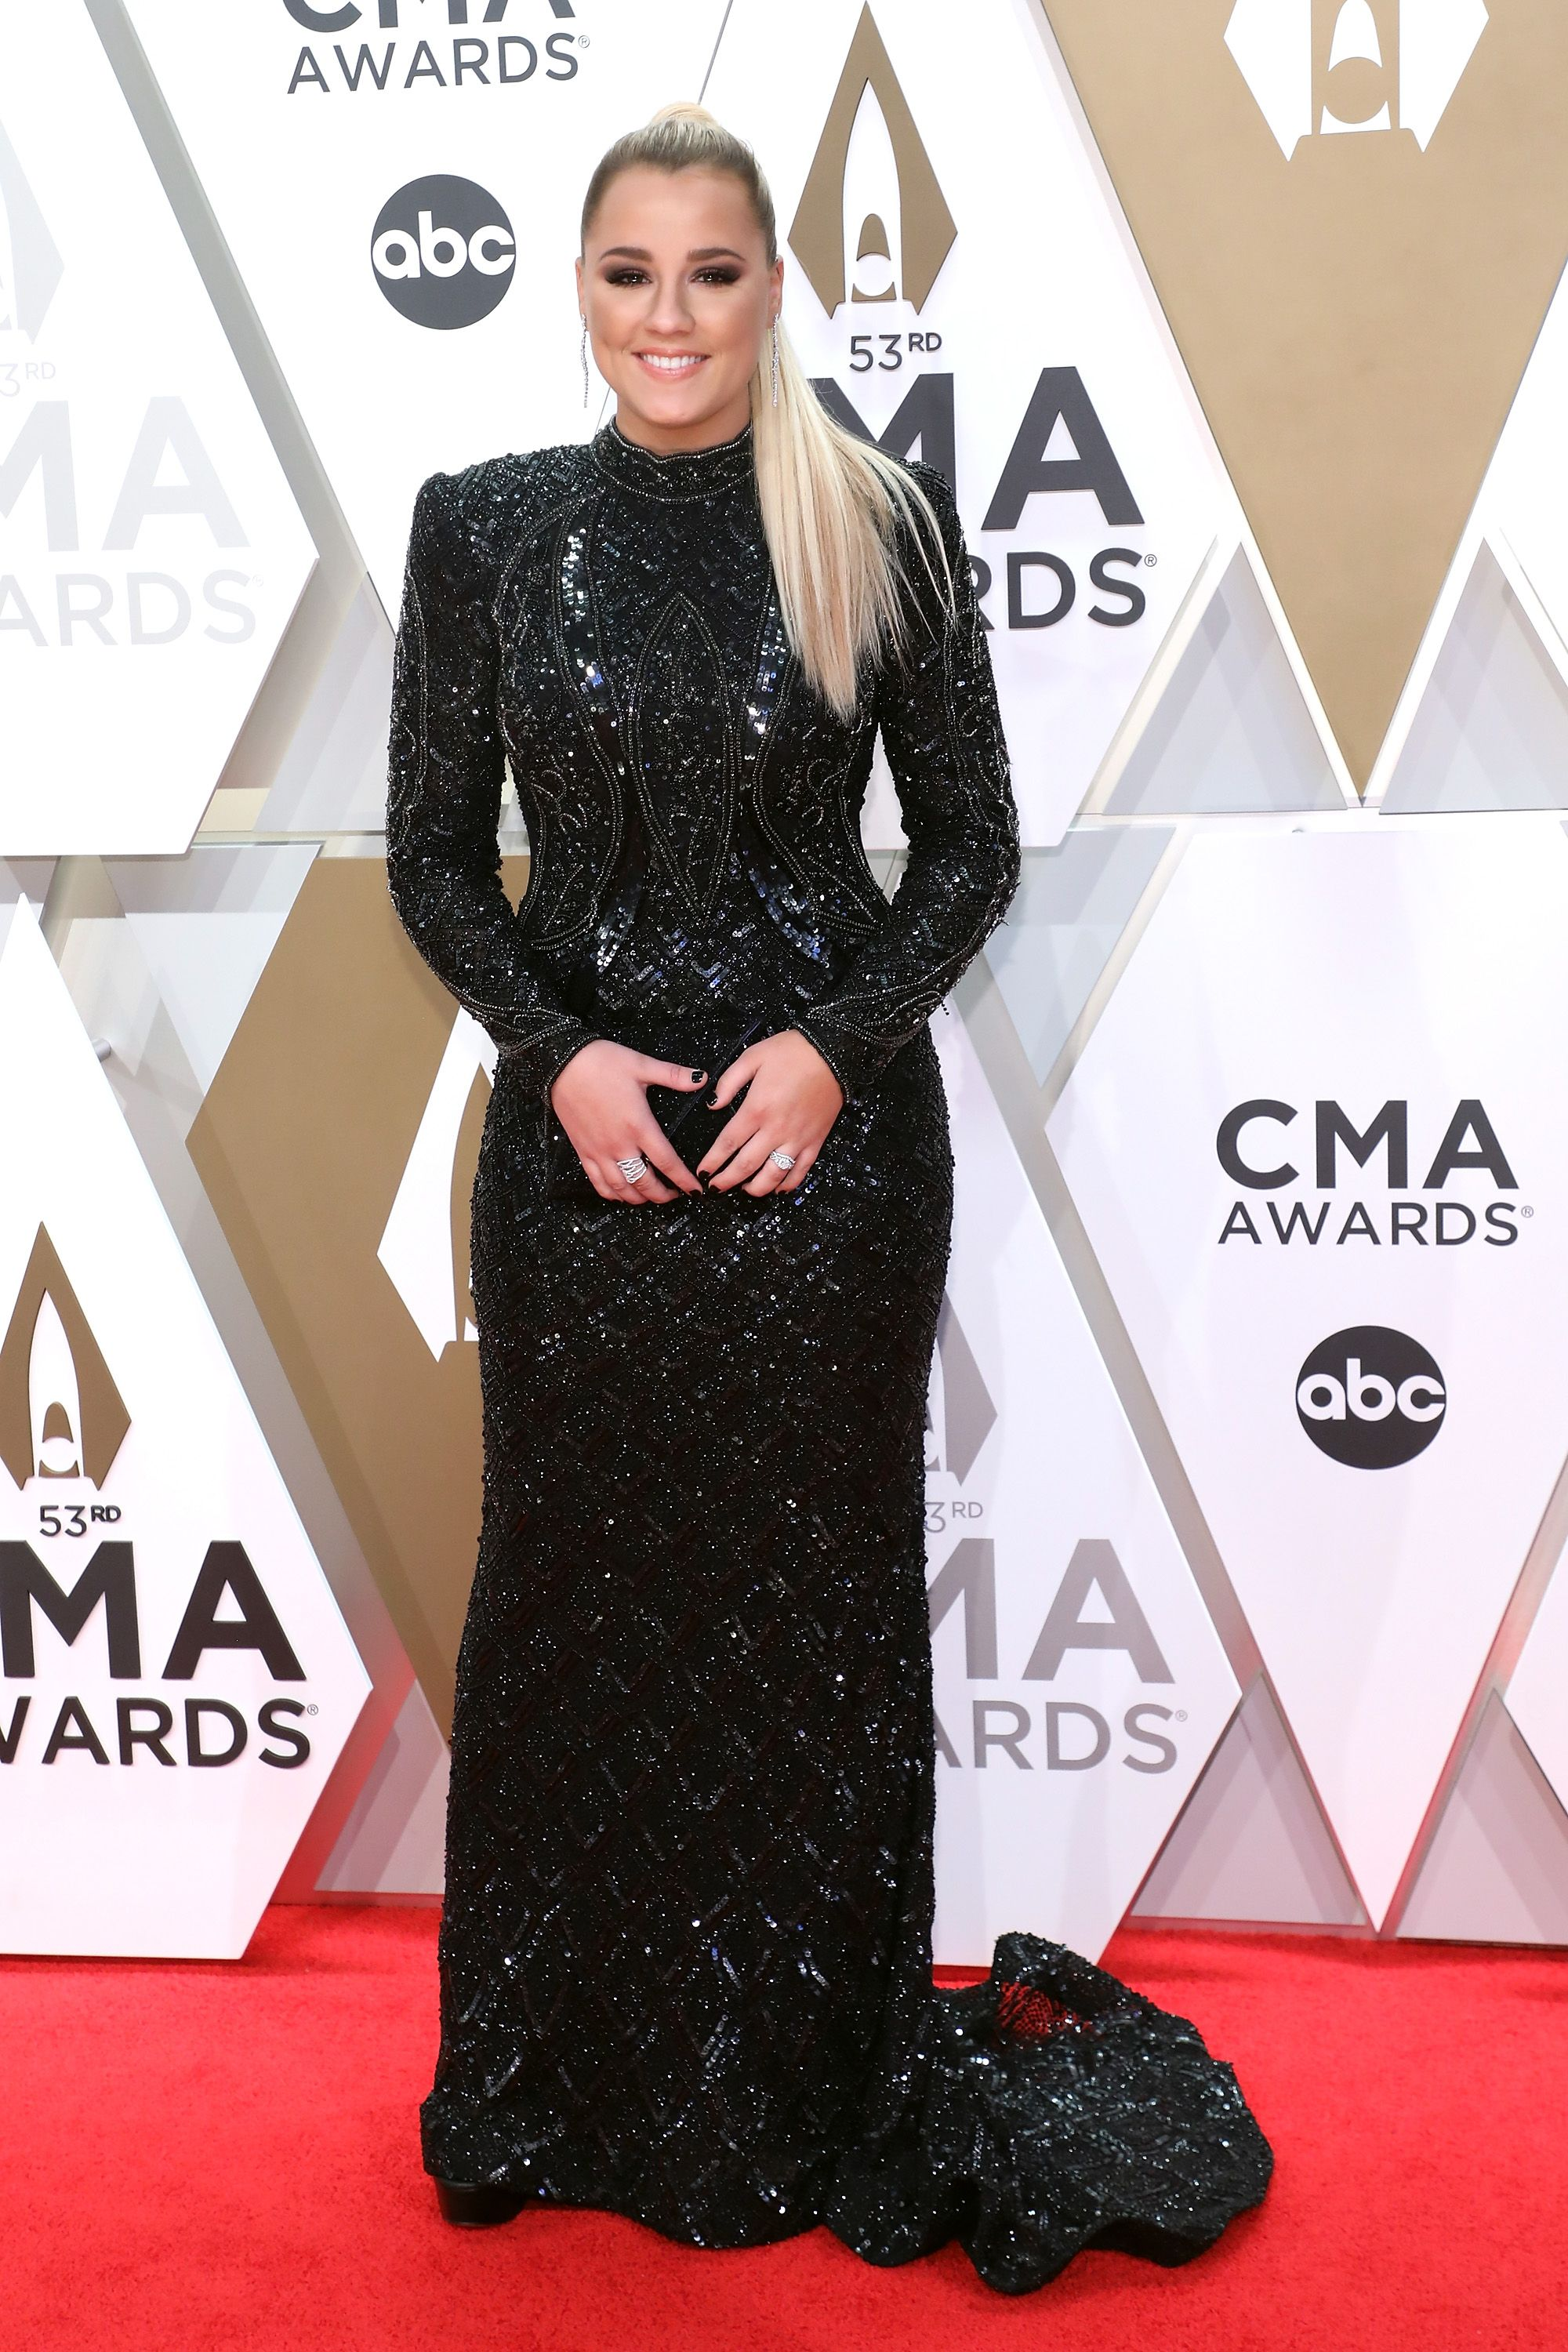 Gabby Barrett during the 53nd annual CMA Awards at Bridgestone Arena on November 13, 2019 in Nashville, Tennessee. | Getty Images